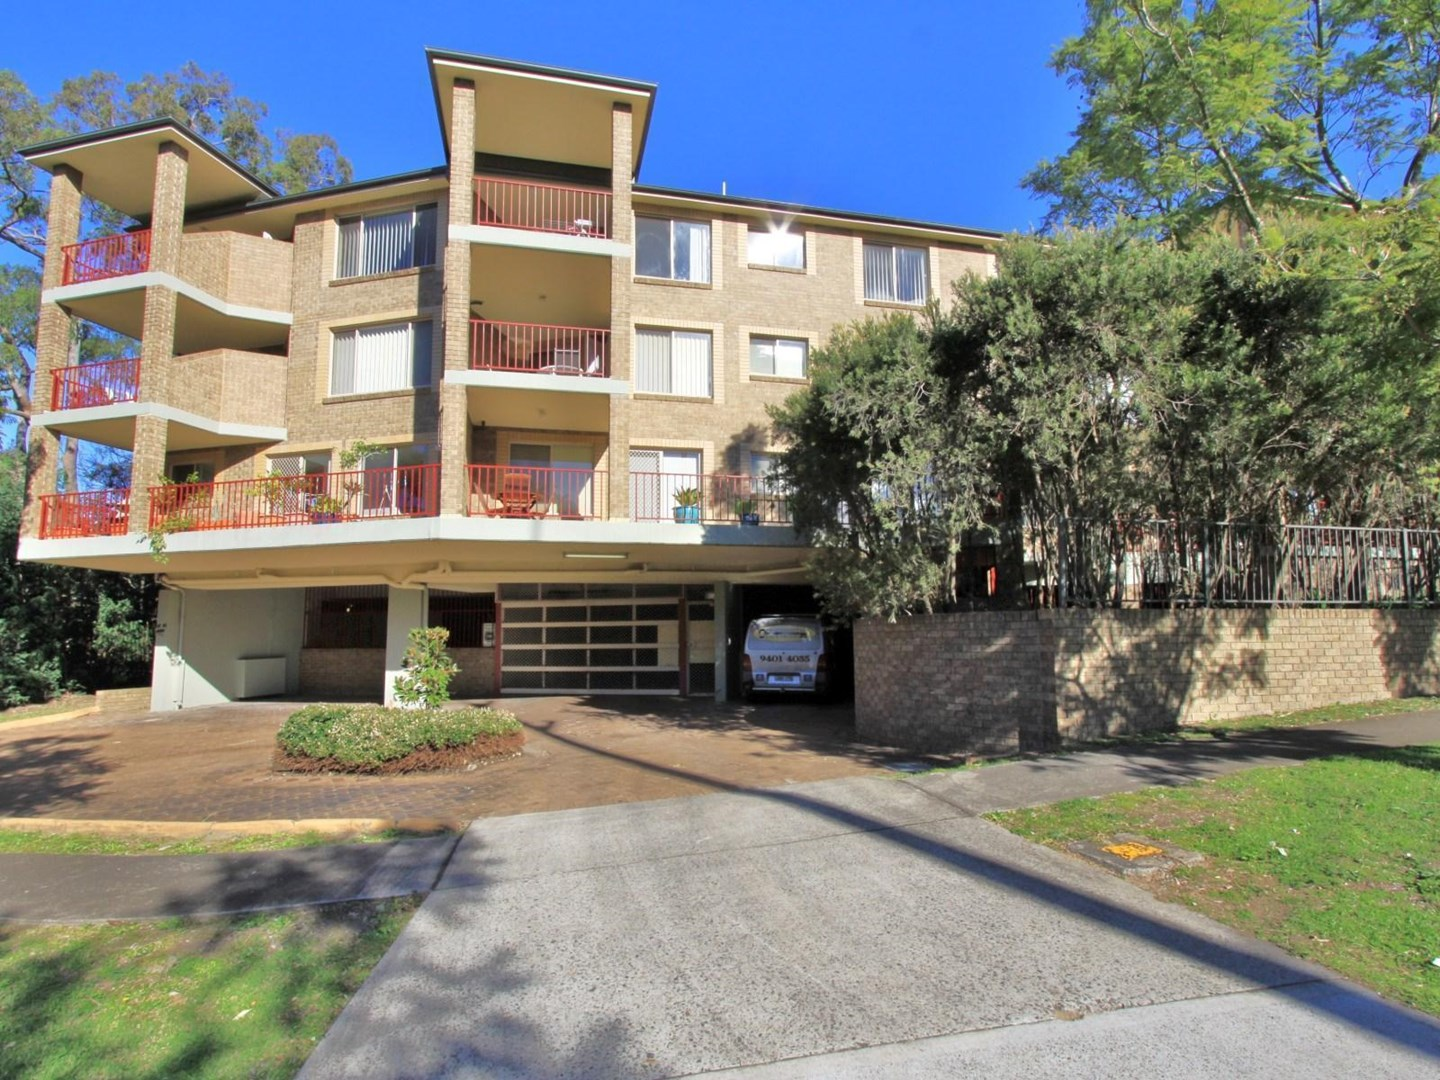 7/14 Water Street, Hornsby NSW 2077, Image 0